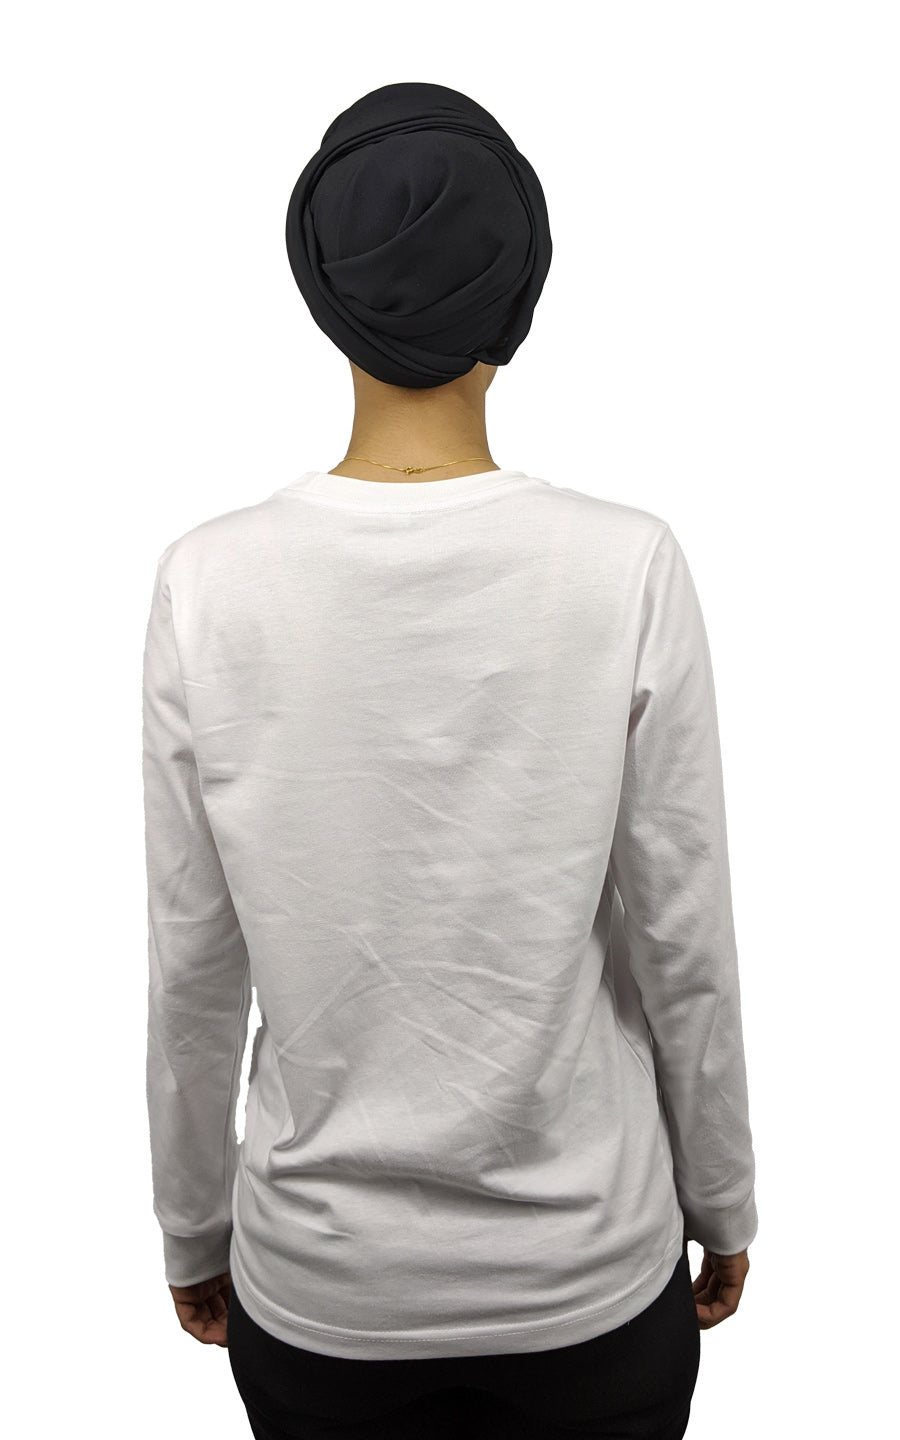 LSSquad Long Sleeved T-Shirt